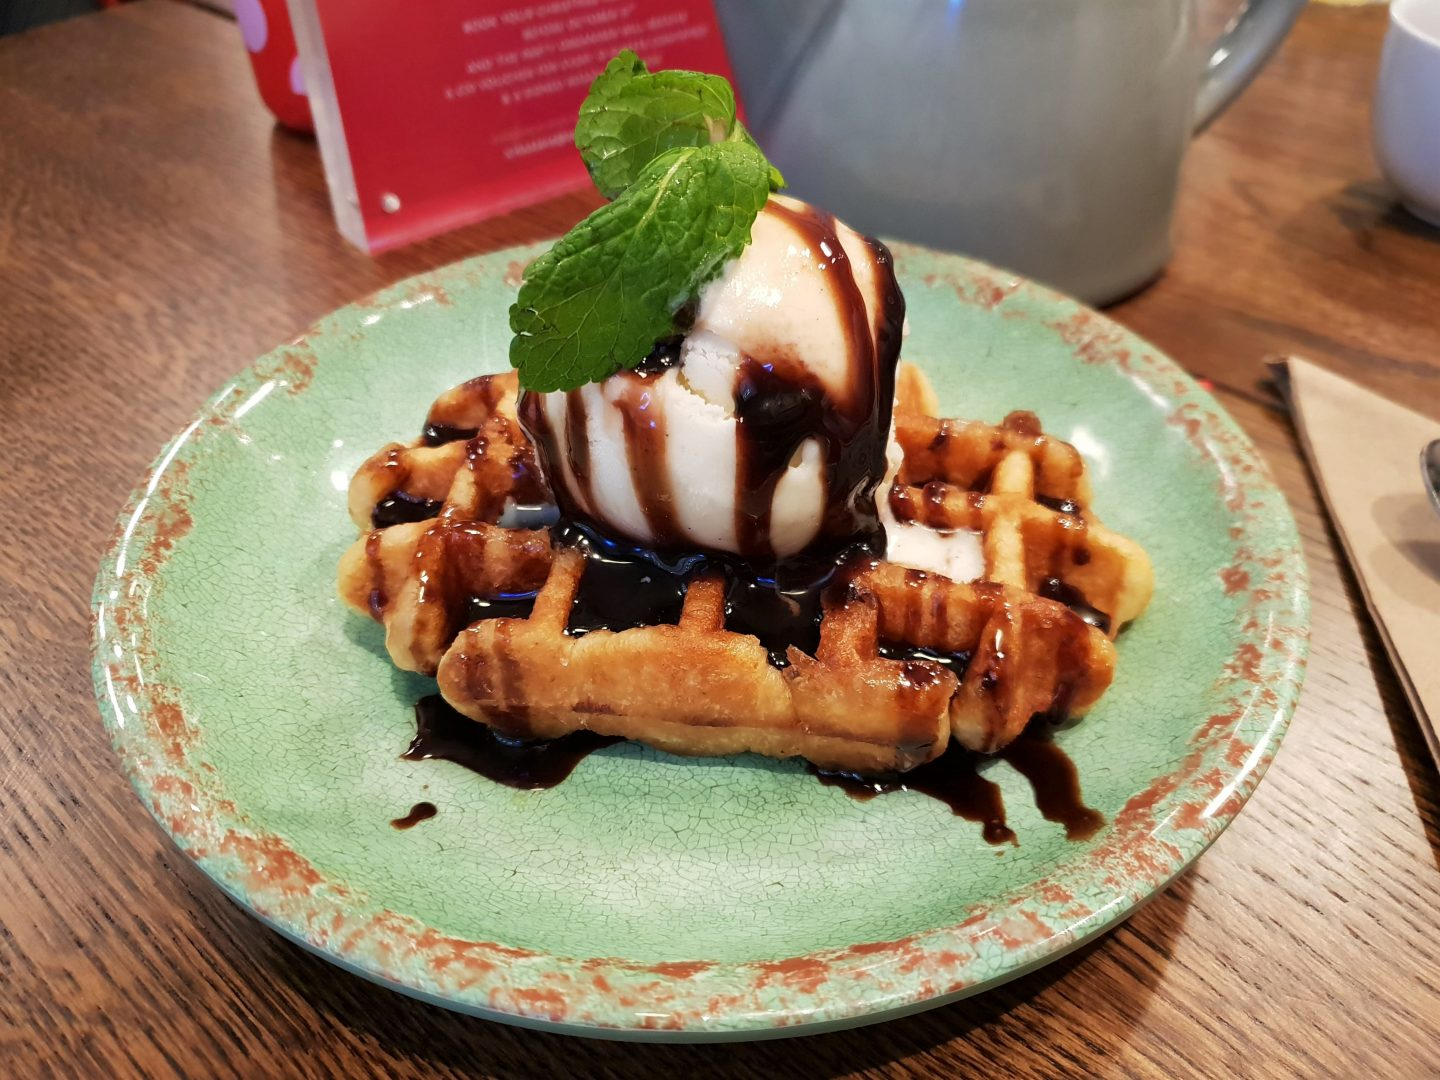 Waffle with ice cream and chocolate sauce at Rosa's Thai Cafe, Bluewater